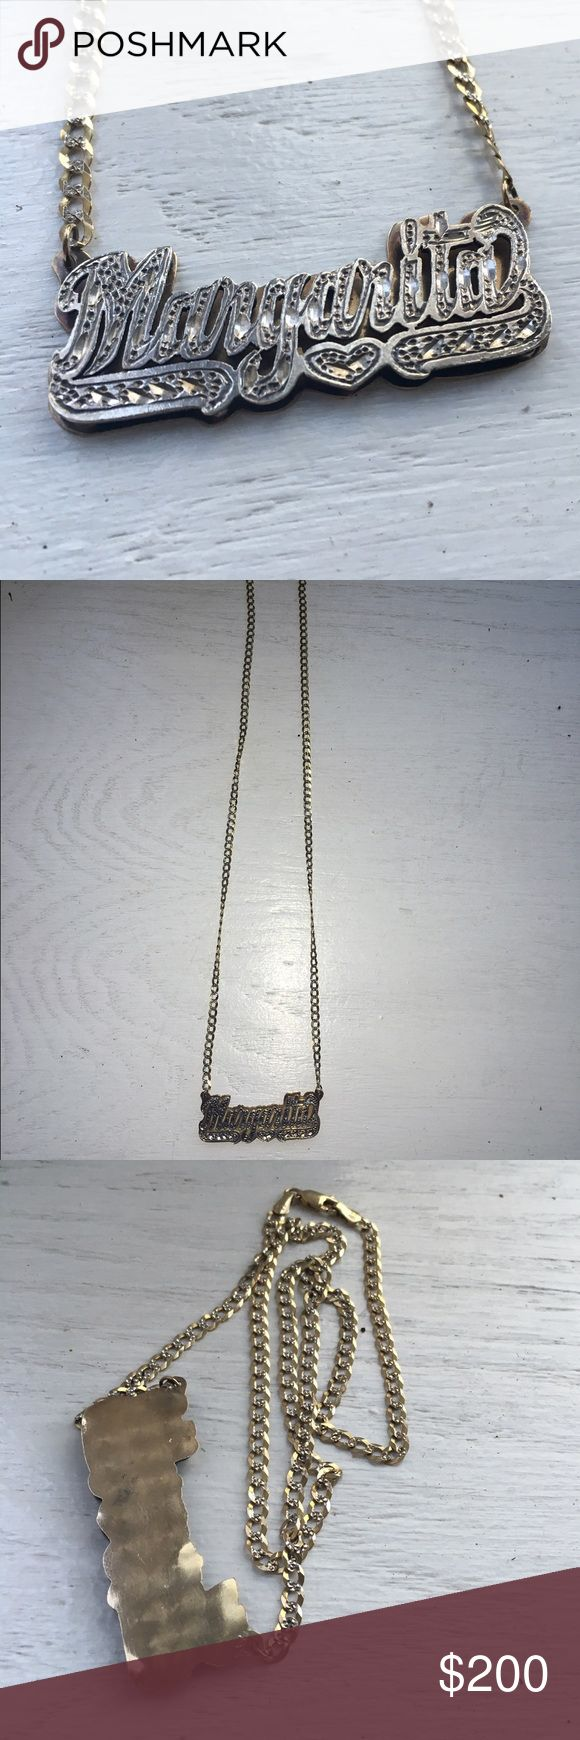 Gold chain namesake nameplate necklace margarita Margarita name plate, paid $600 for this, I have no idea what K it is so please don't ask. Such good quality and a bargain price ;) Louis Vuitton Jewelry Necklaces